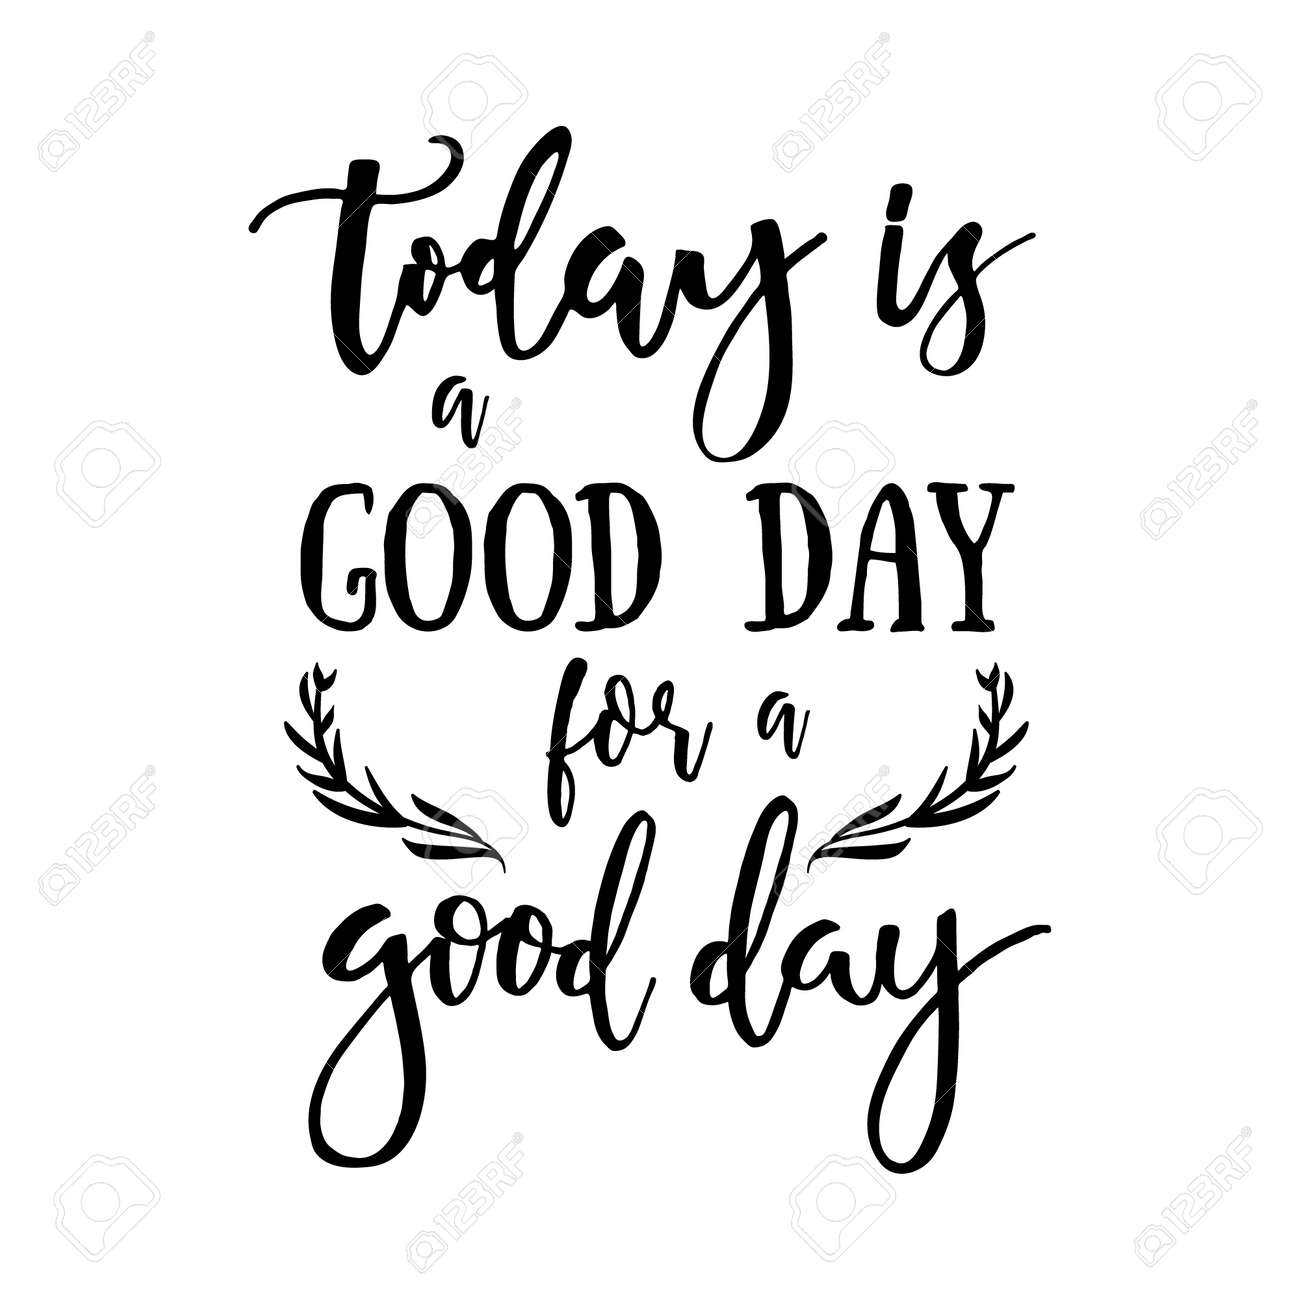 Today is a good day for a good day - Inspirational quote handwritten with black ink and brush. Good for posters, t-shirts, prints, cards, banners. Hand lettering, typographic element for your design. - 65657770